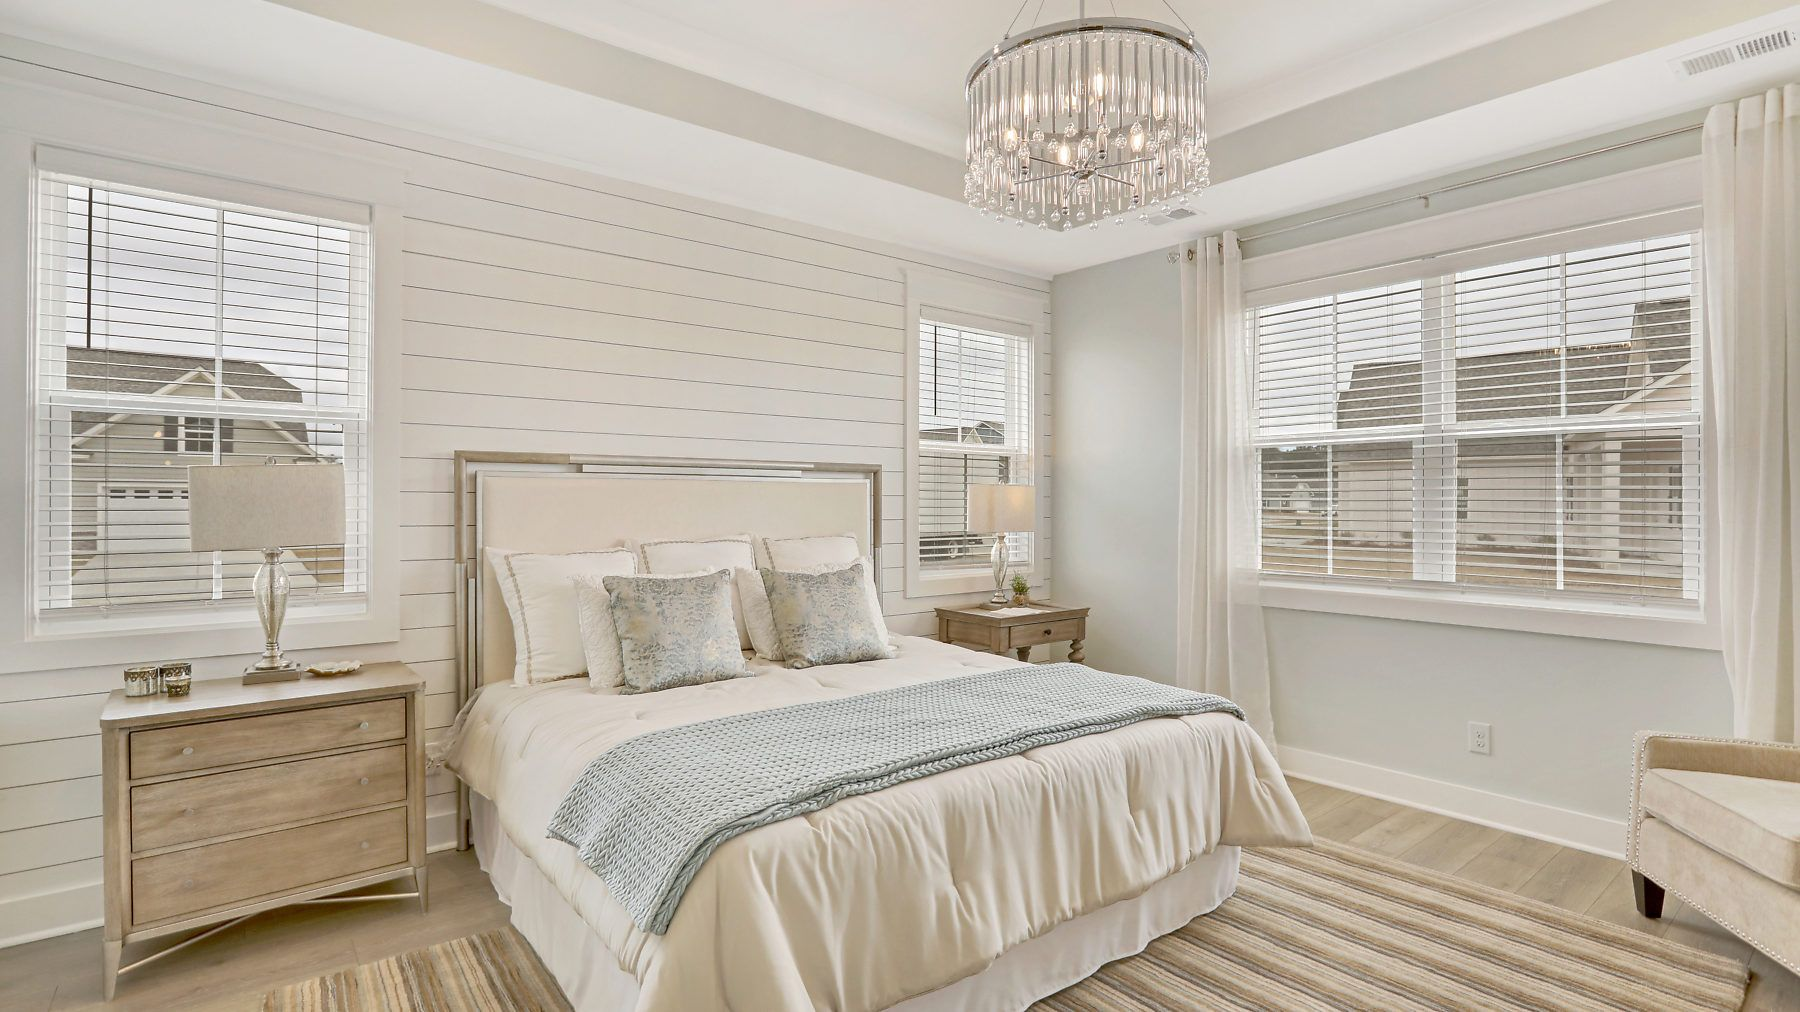 Bedroom featured in The Tillery By Village Park Homes in Savannah, GA